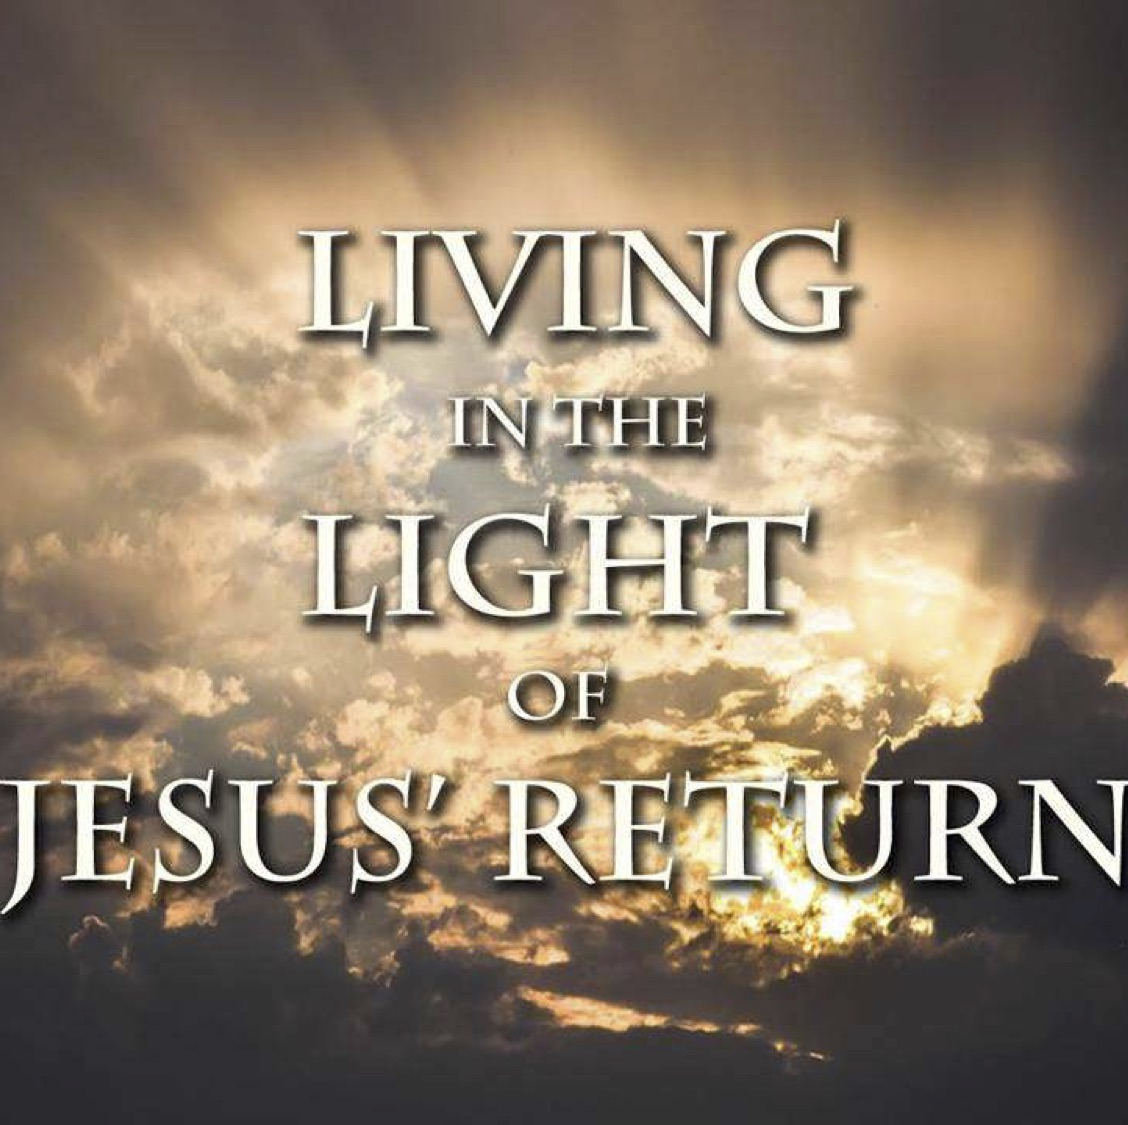 Living in light of jesus' return   Feb-Apr 2017  - Jesus is coming back.  How does that affect the way we live our lives?  How do we navigate our culture while following Jesus? A 10 week series through 1 and 2 Thessalonians